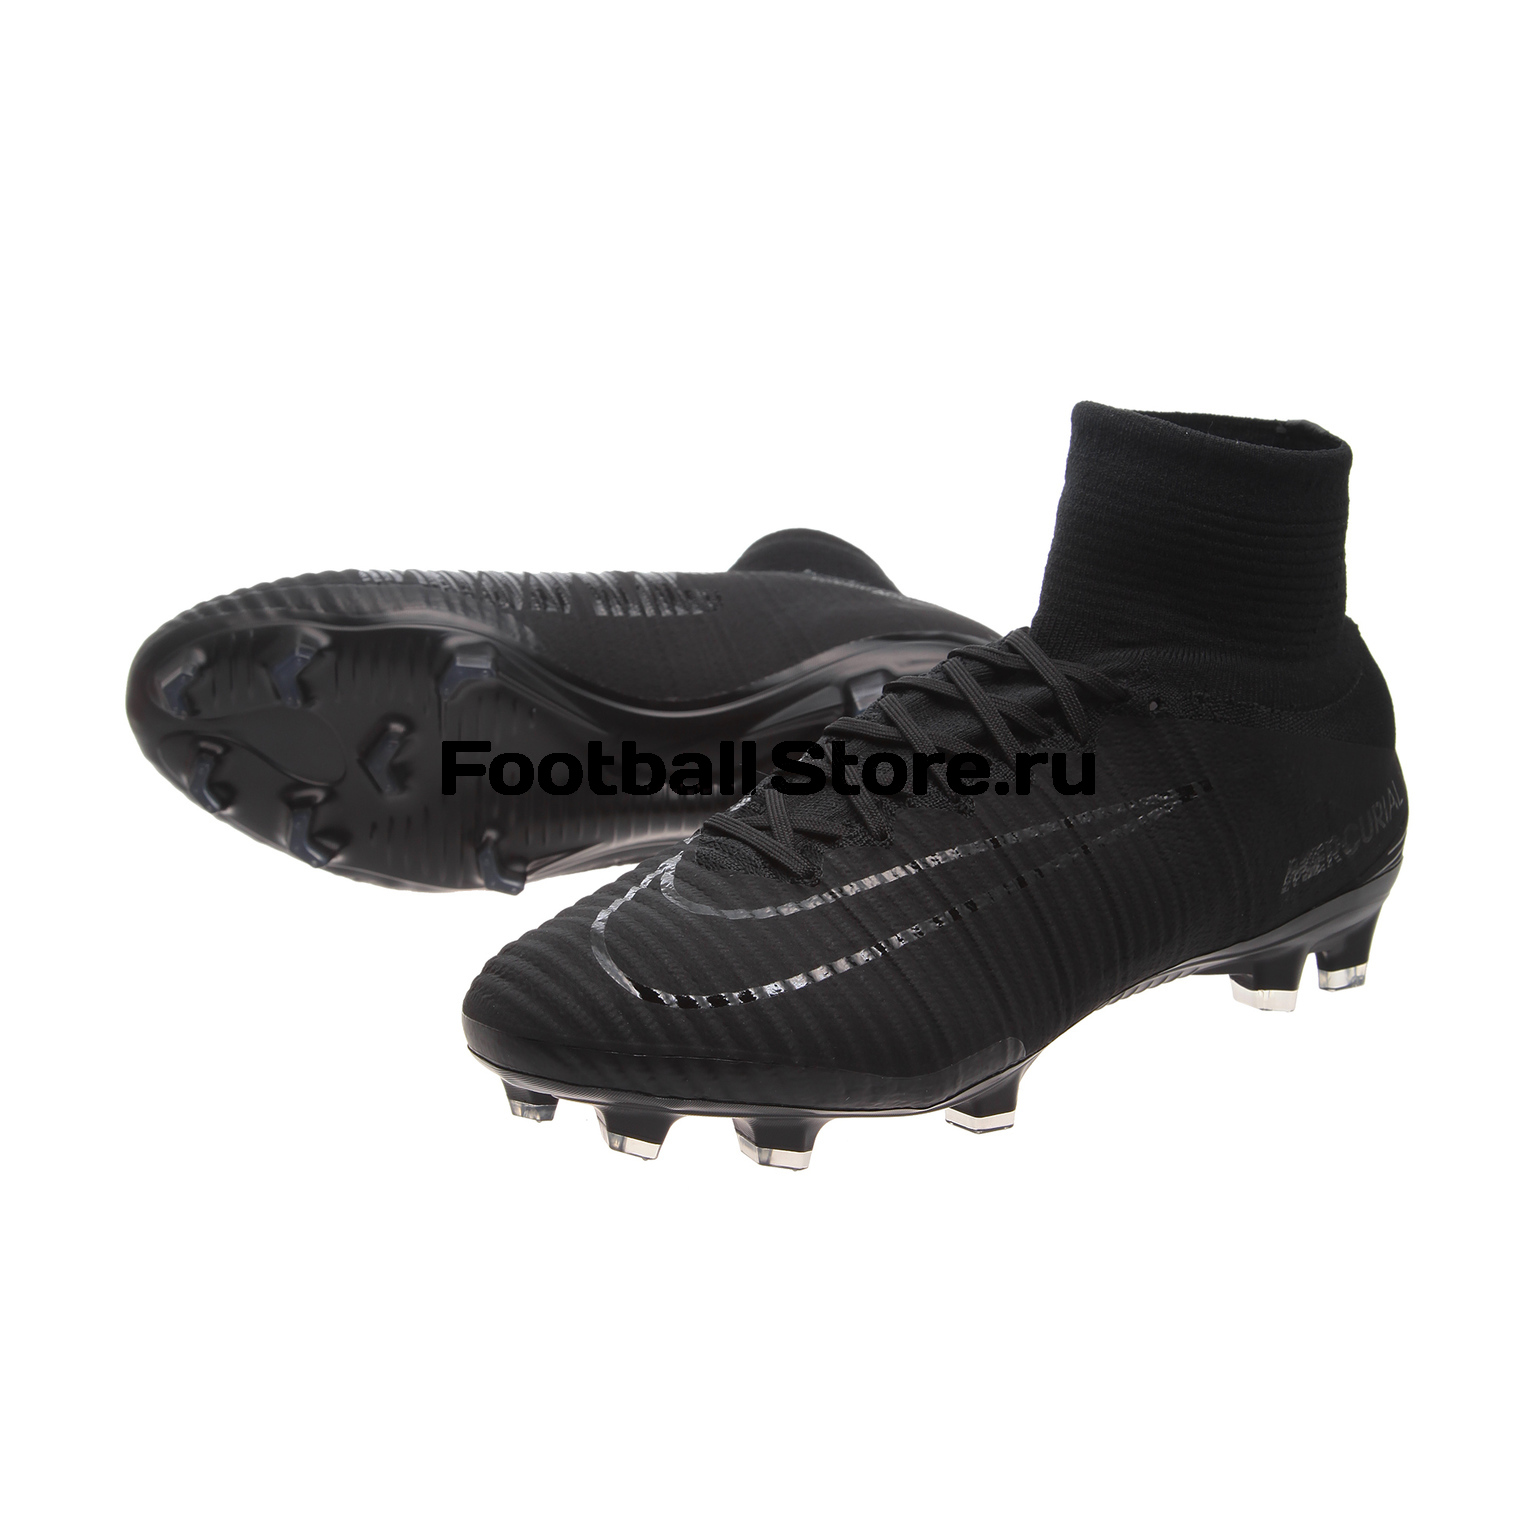 Бутсы Nike Mercurial Superfly V DF FG 831940-001 детские бутсы nike бутсы nike jr phantom 3 elite df fg ah7292 081